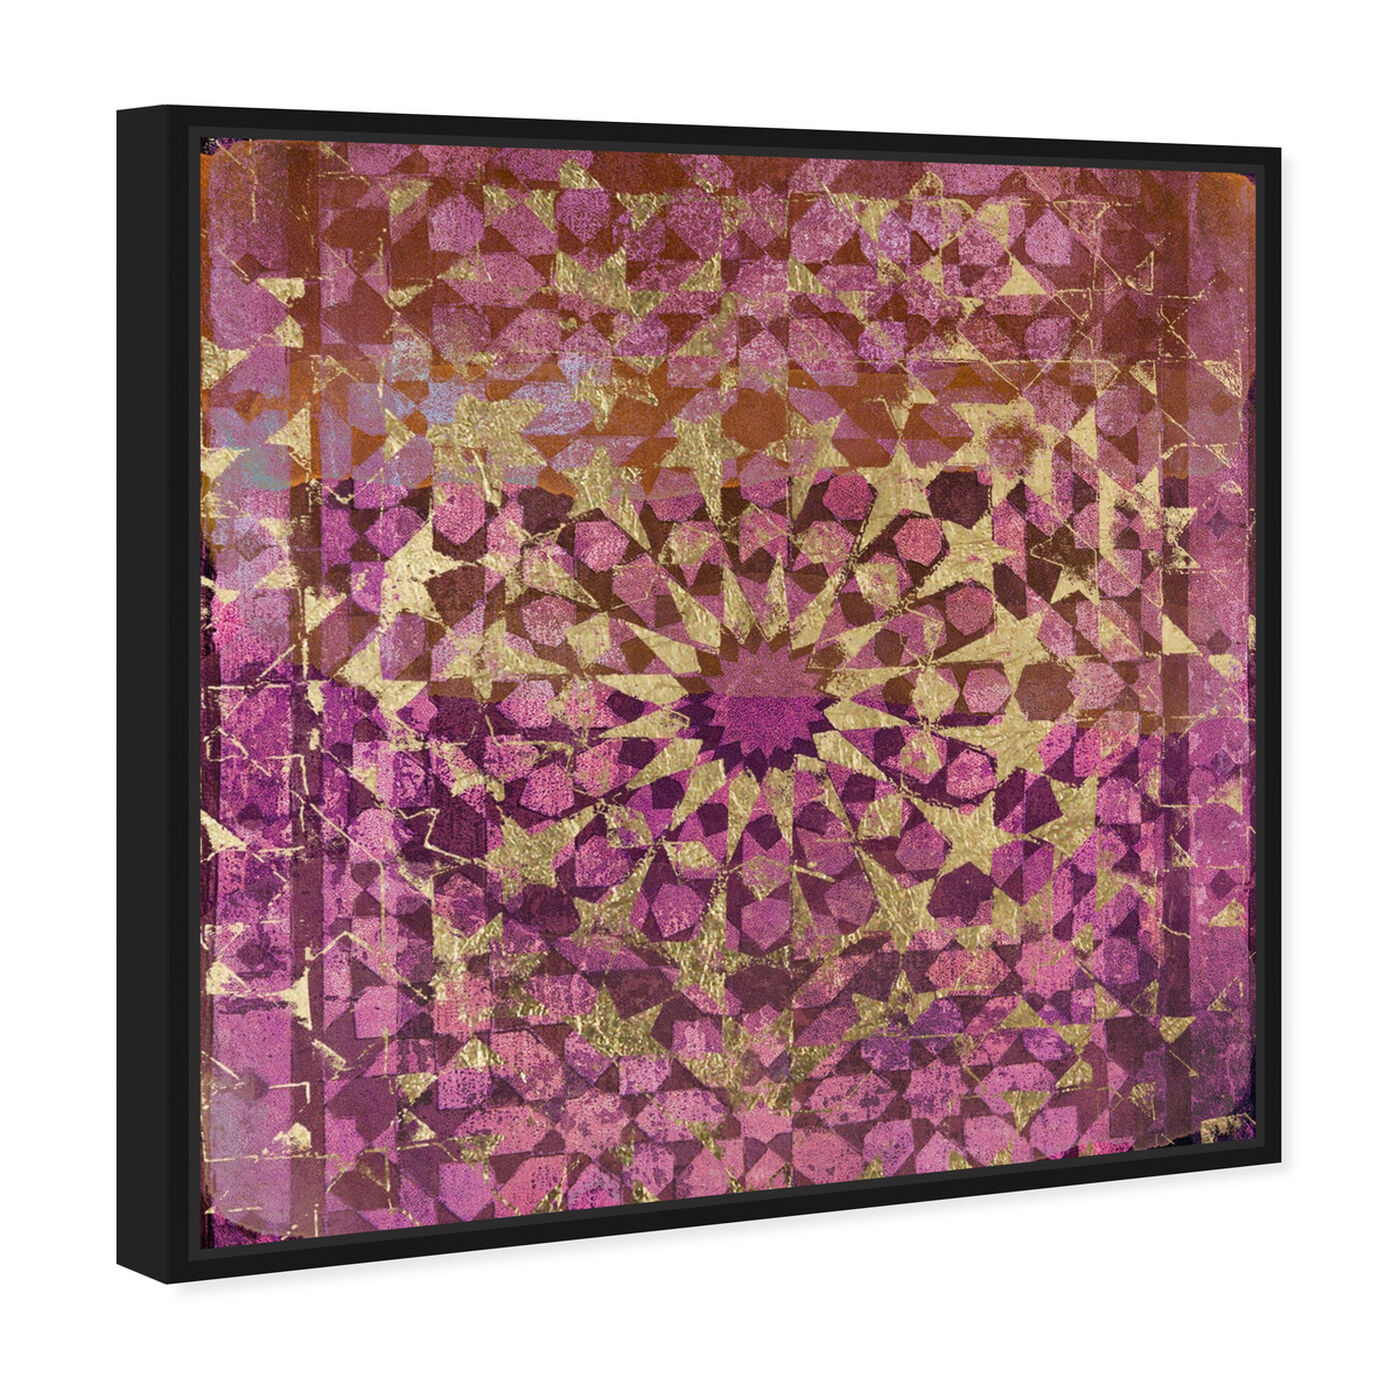 Angled view of Wine Veranda in Gold featuring abstract and patterns art.